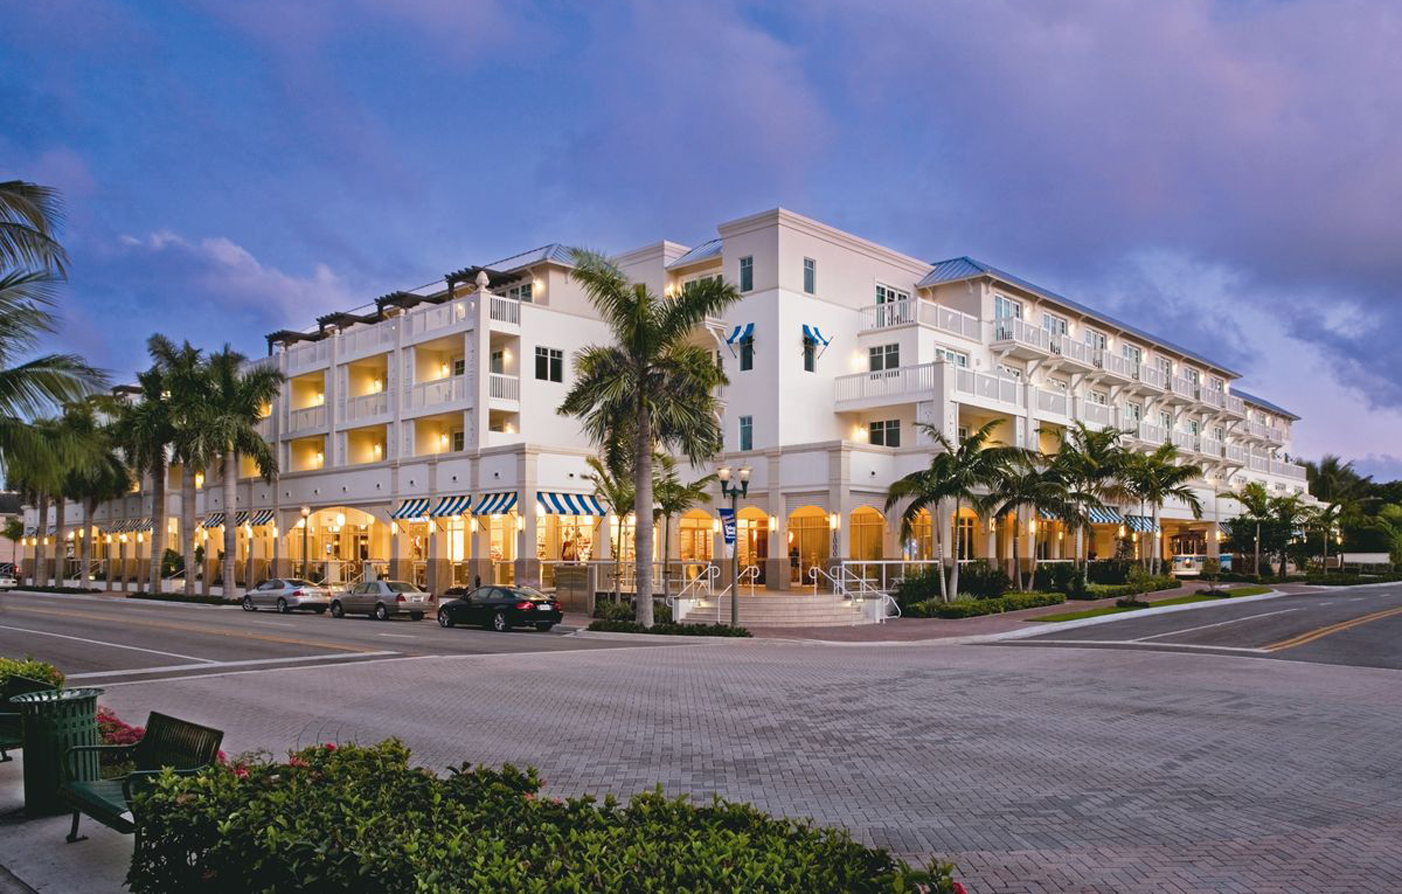 The Seagate Hotel & Spa  in Delray Beach